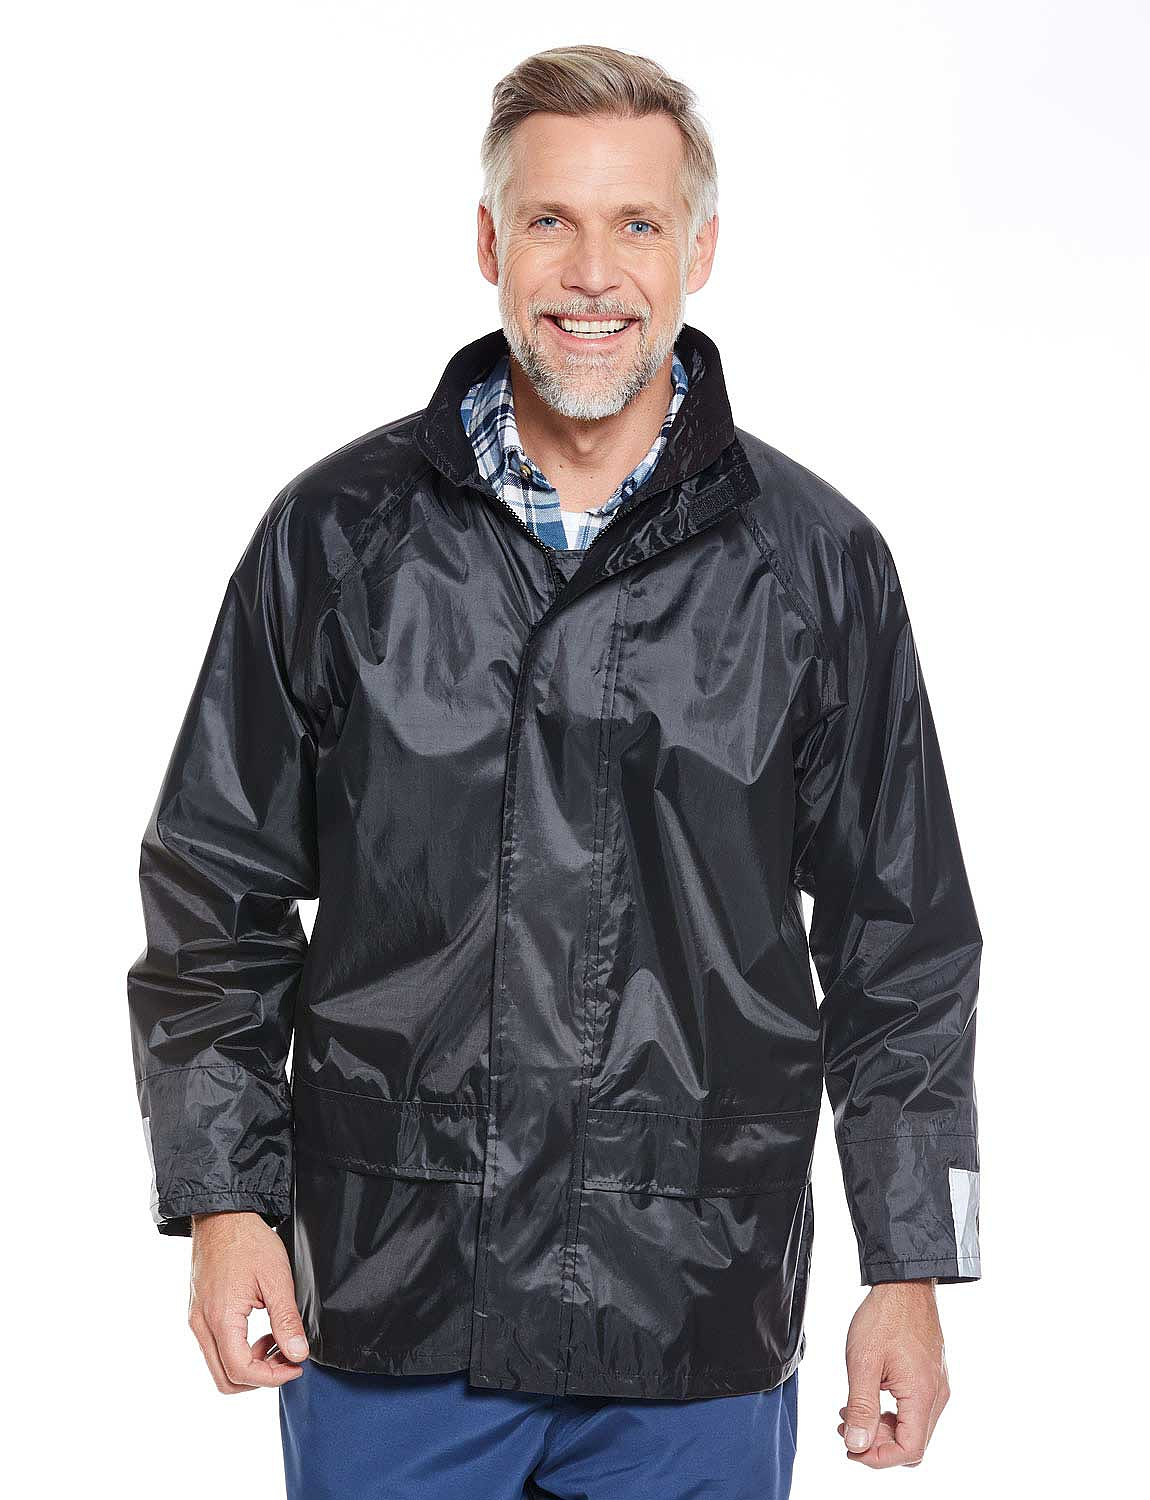 Waterproof Jacket with Free Waterproof Trousers - Black